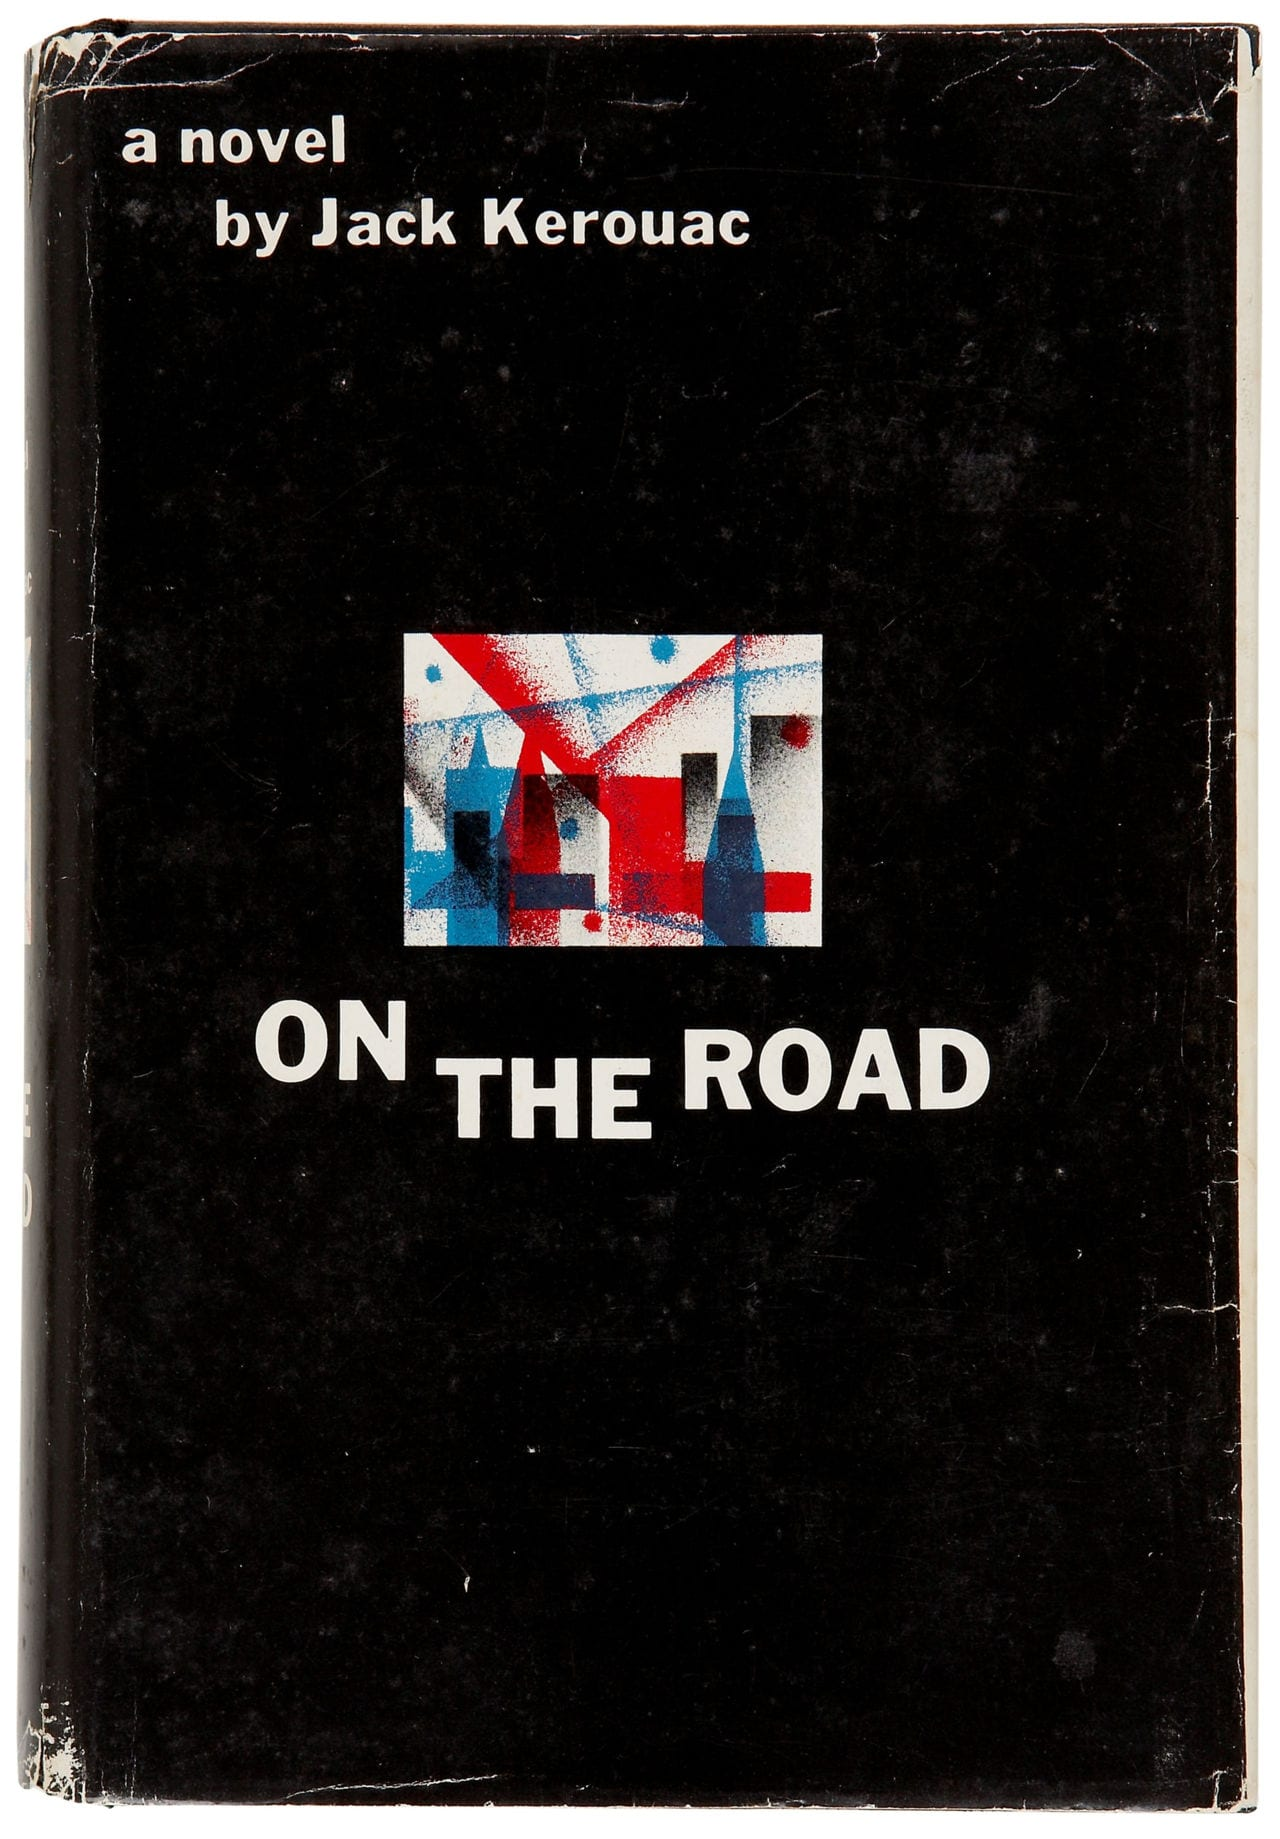 Jack Kerouac. On the Road. New York: Viking Press, 1957. First edition. Octavo. 310 pages.